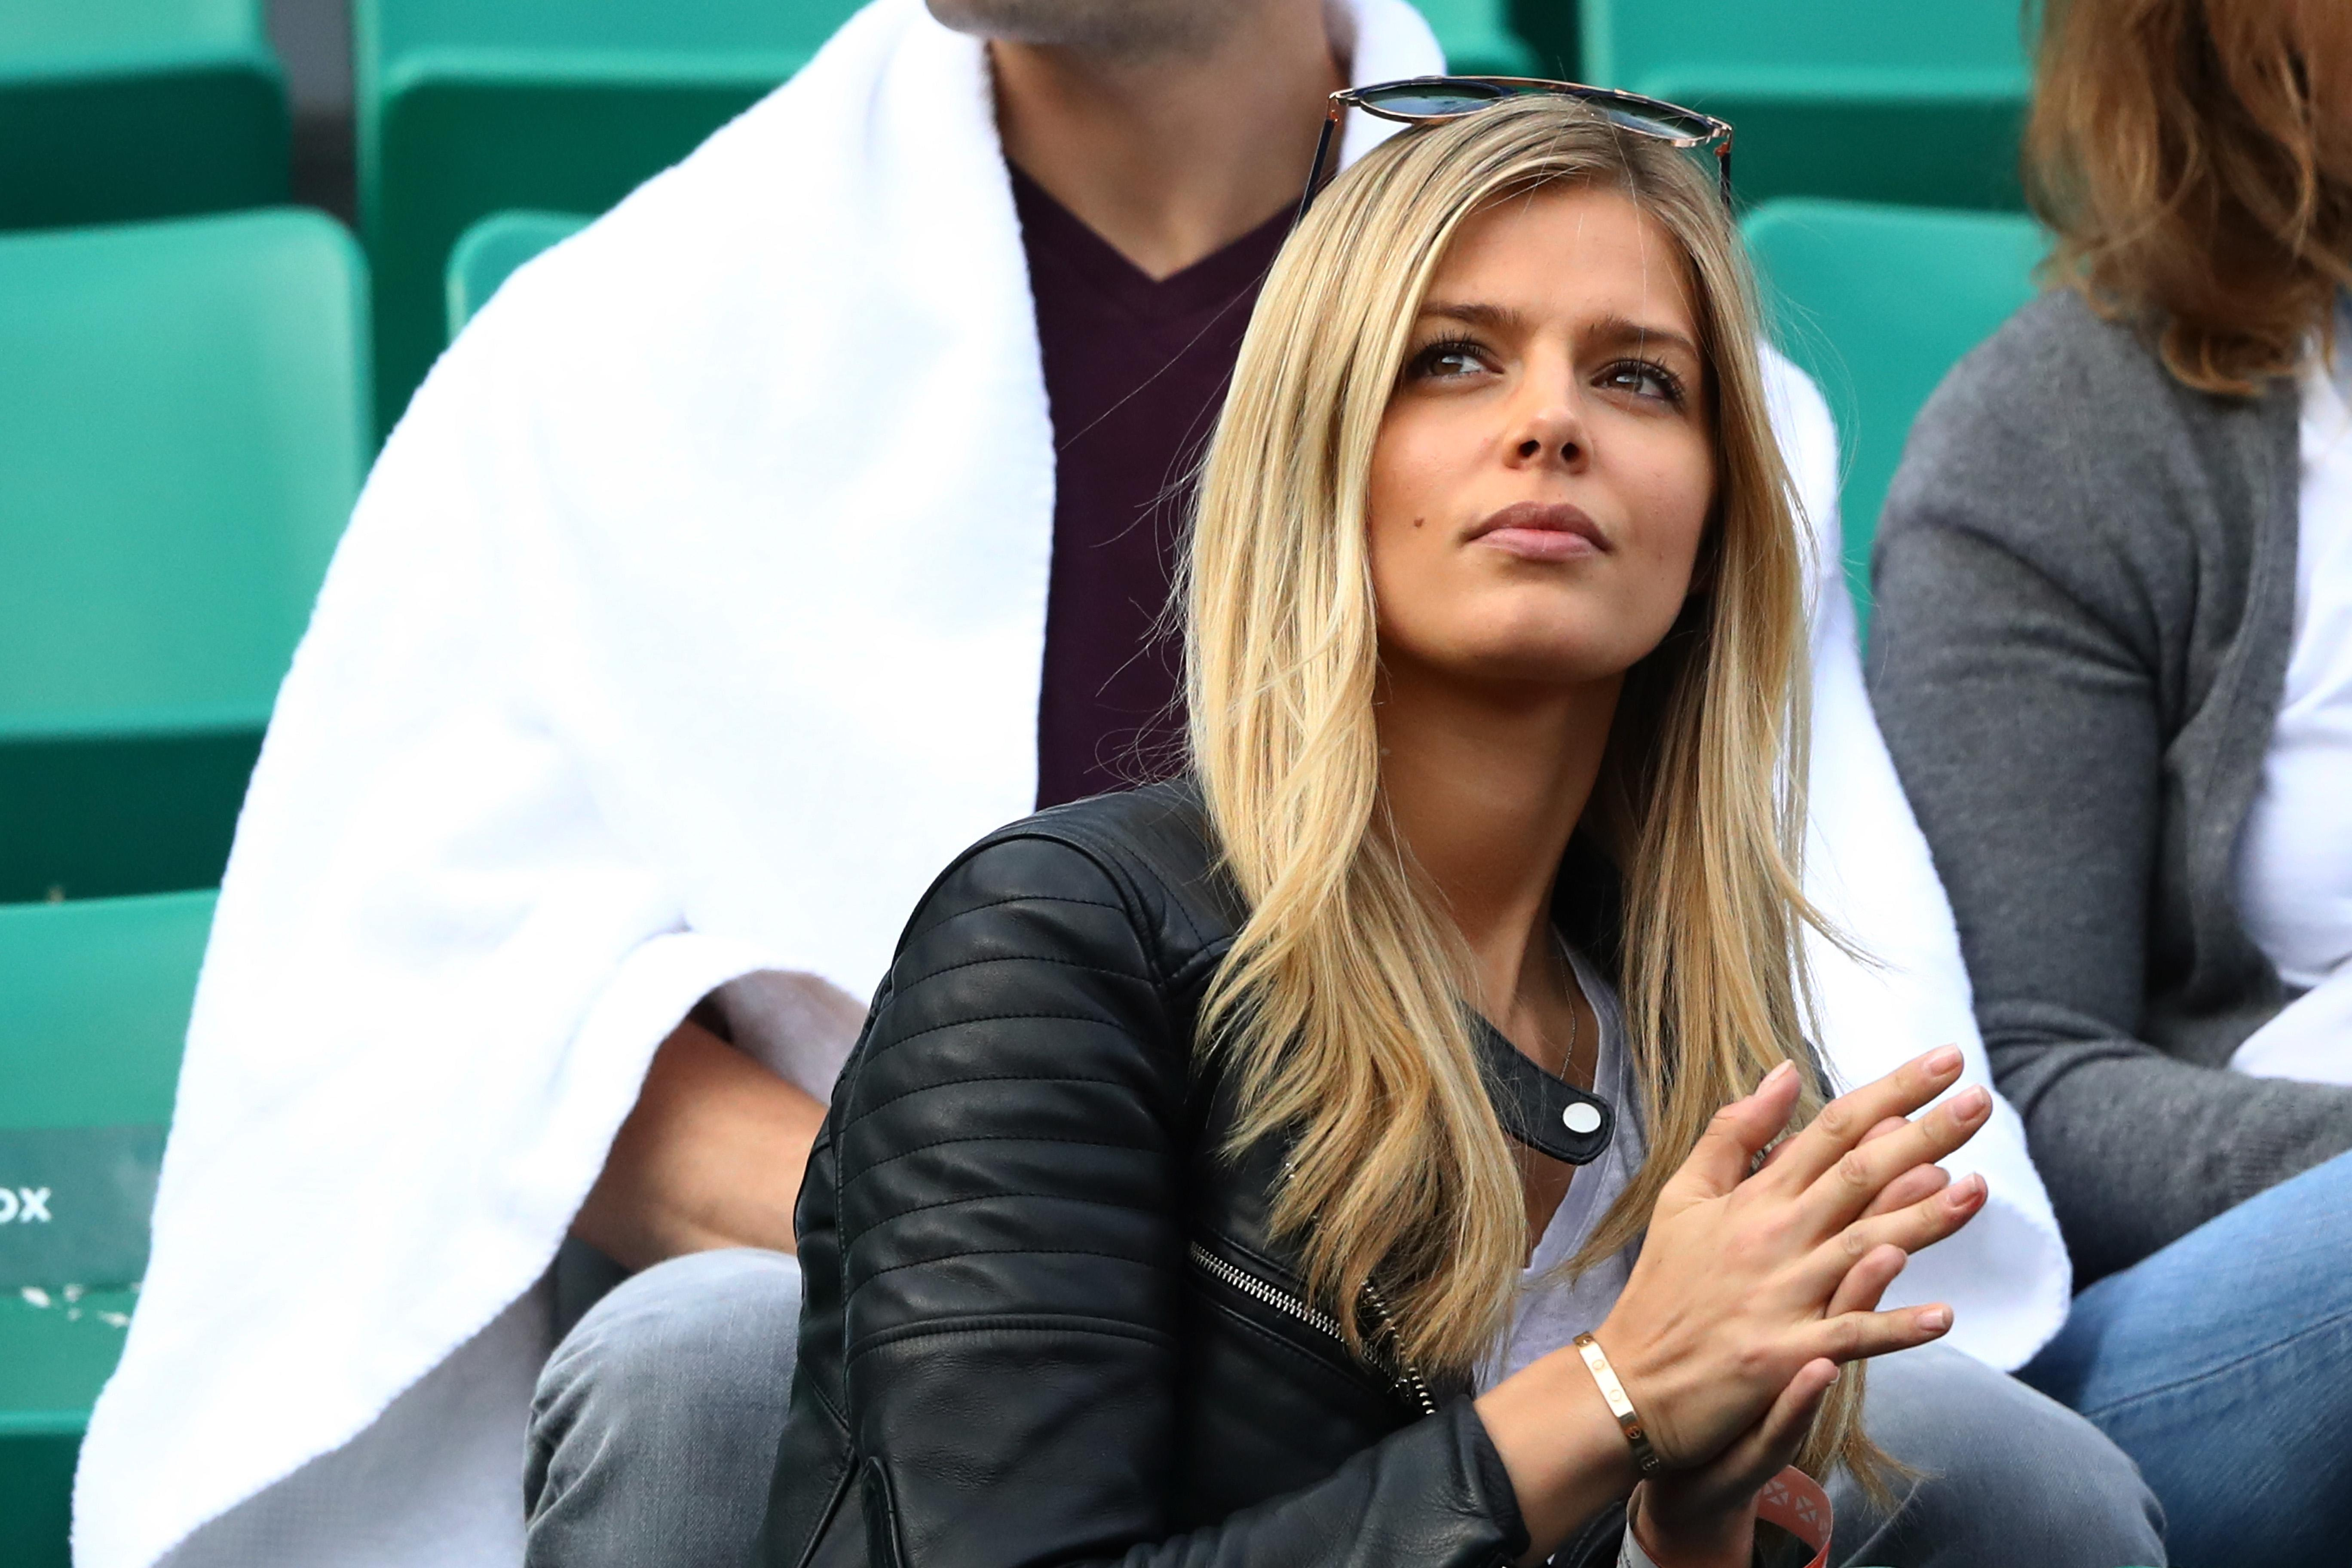 Danielle Knudson watches Milos Raonic play during the 2016 French Open